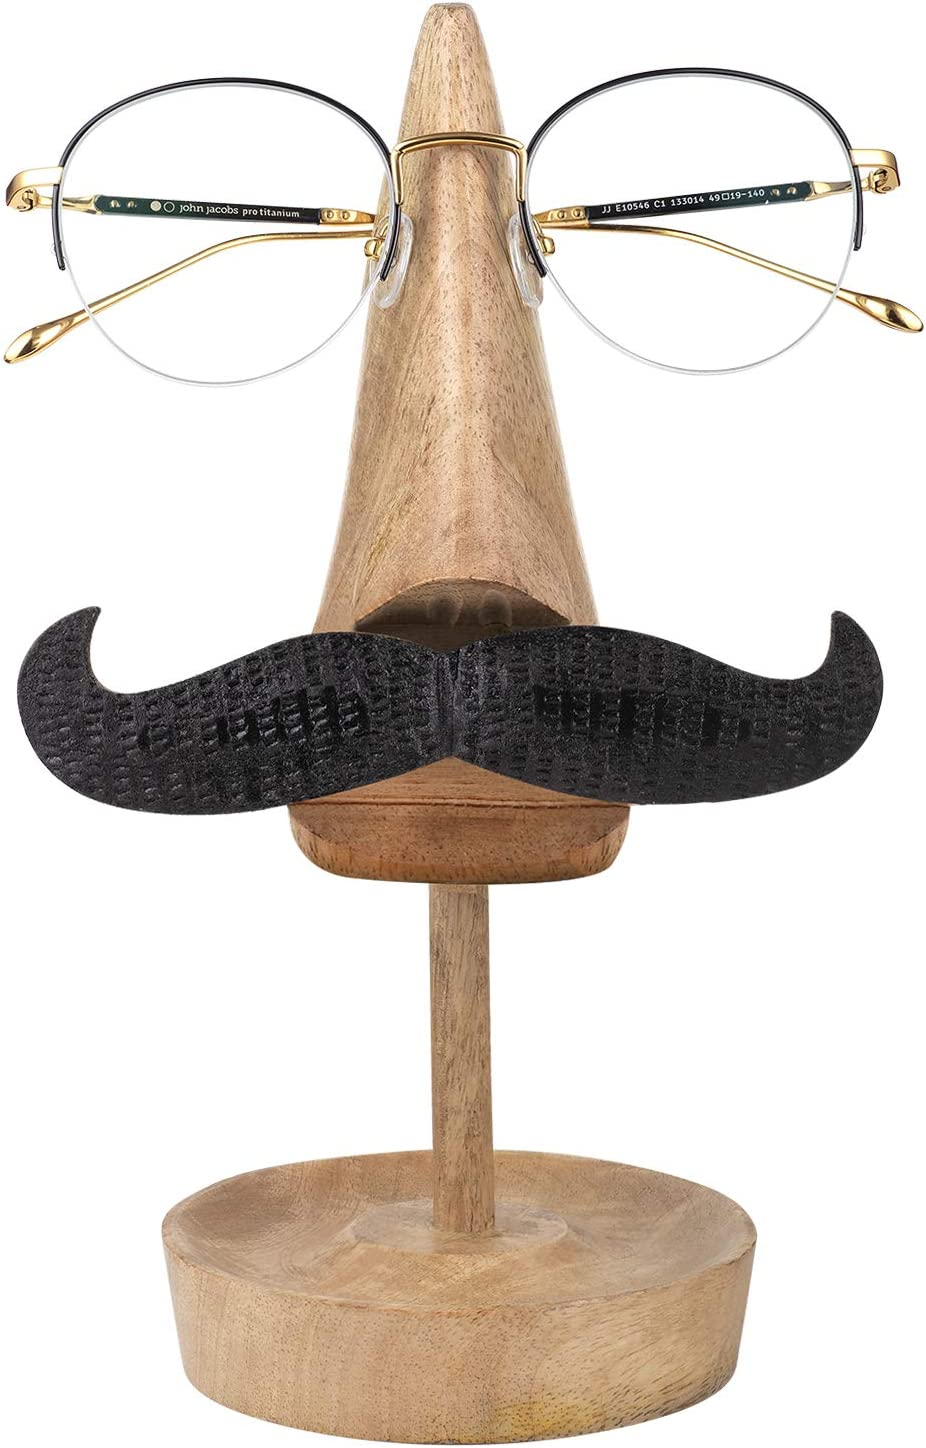 Aheli Wooden Hand Carved Mango Wood Spectacle Eyeglass Holder Mustache Sunglass Display Stand Home Office Desk Décor Unique Gifts Home Decoratives Study Room Shelf Bedside Library Décor